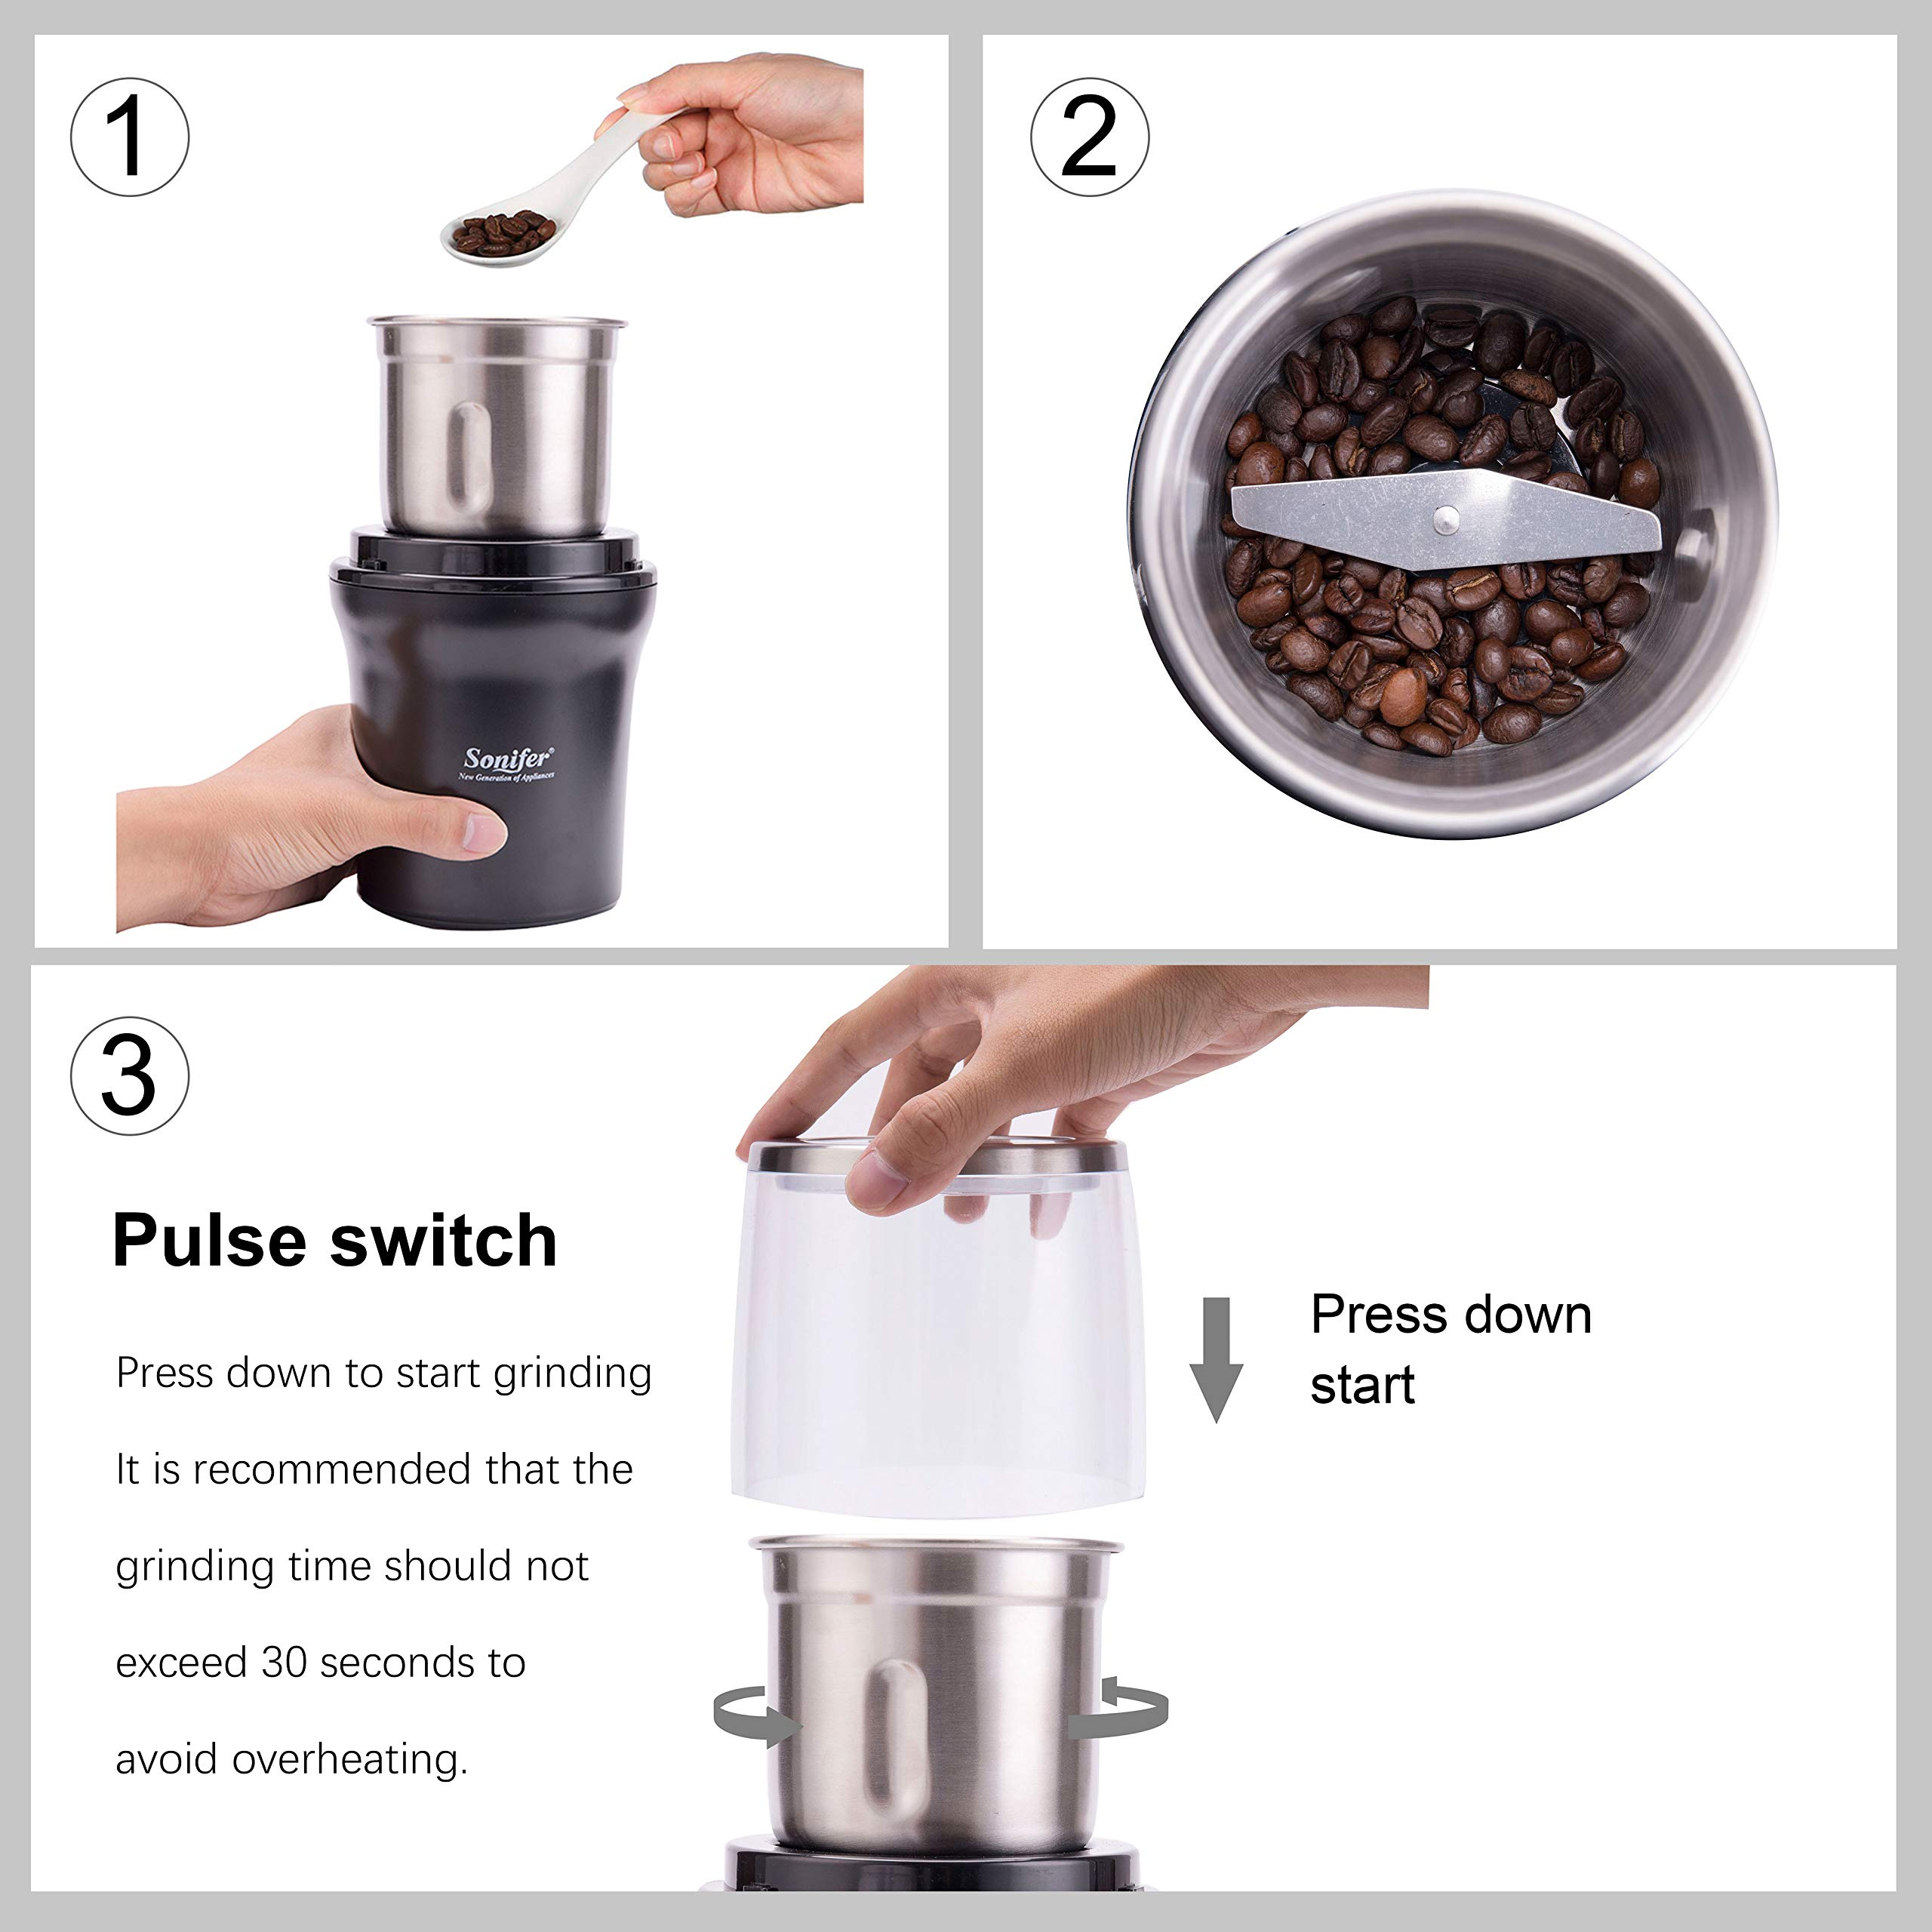 Electric-Coffee-Grinder-300W-Stainless-Steel-Blade-Large-Capacity-Grinder-Beans-Seeds-Nuts-Spices-Removable-Grinding-Bowl-Easy-to-Clean-SoniferLifetime-Warranty